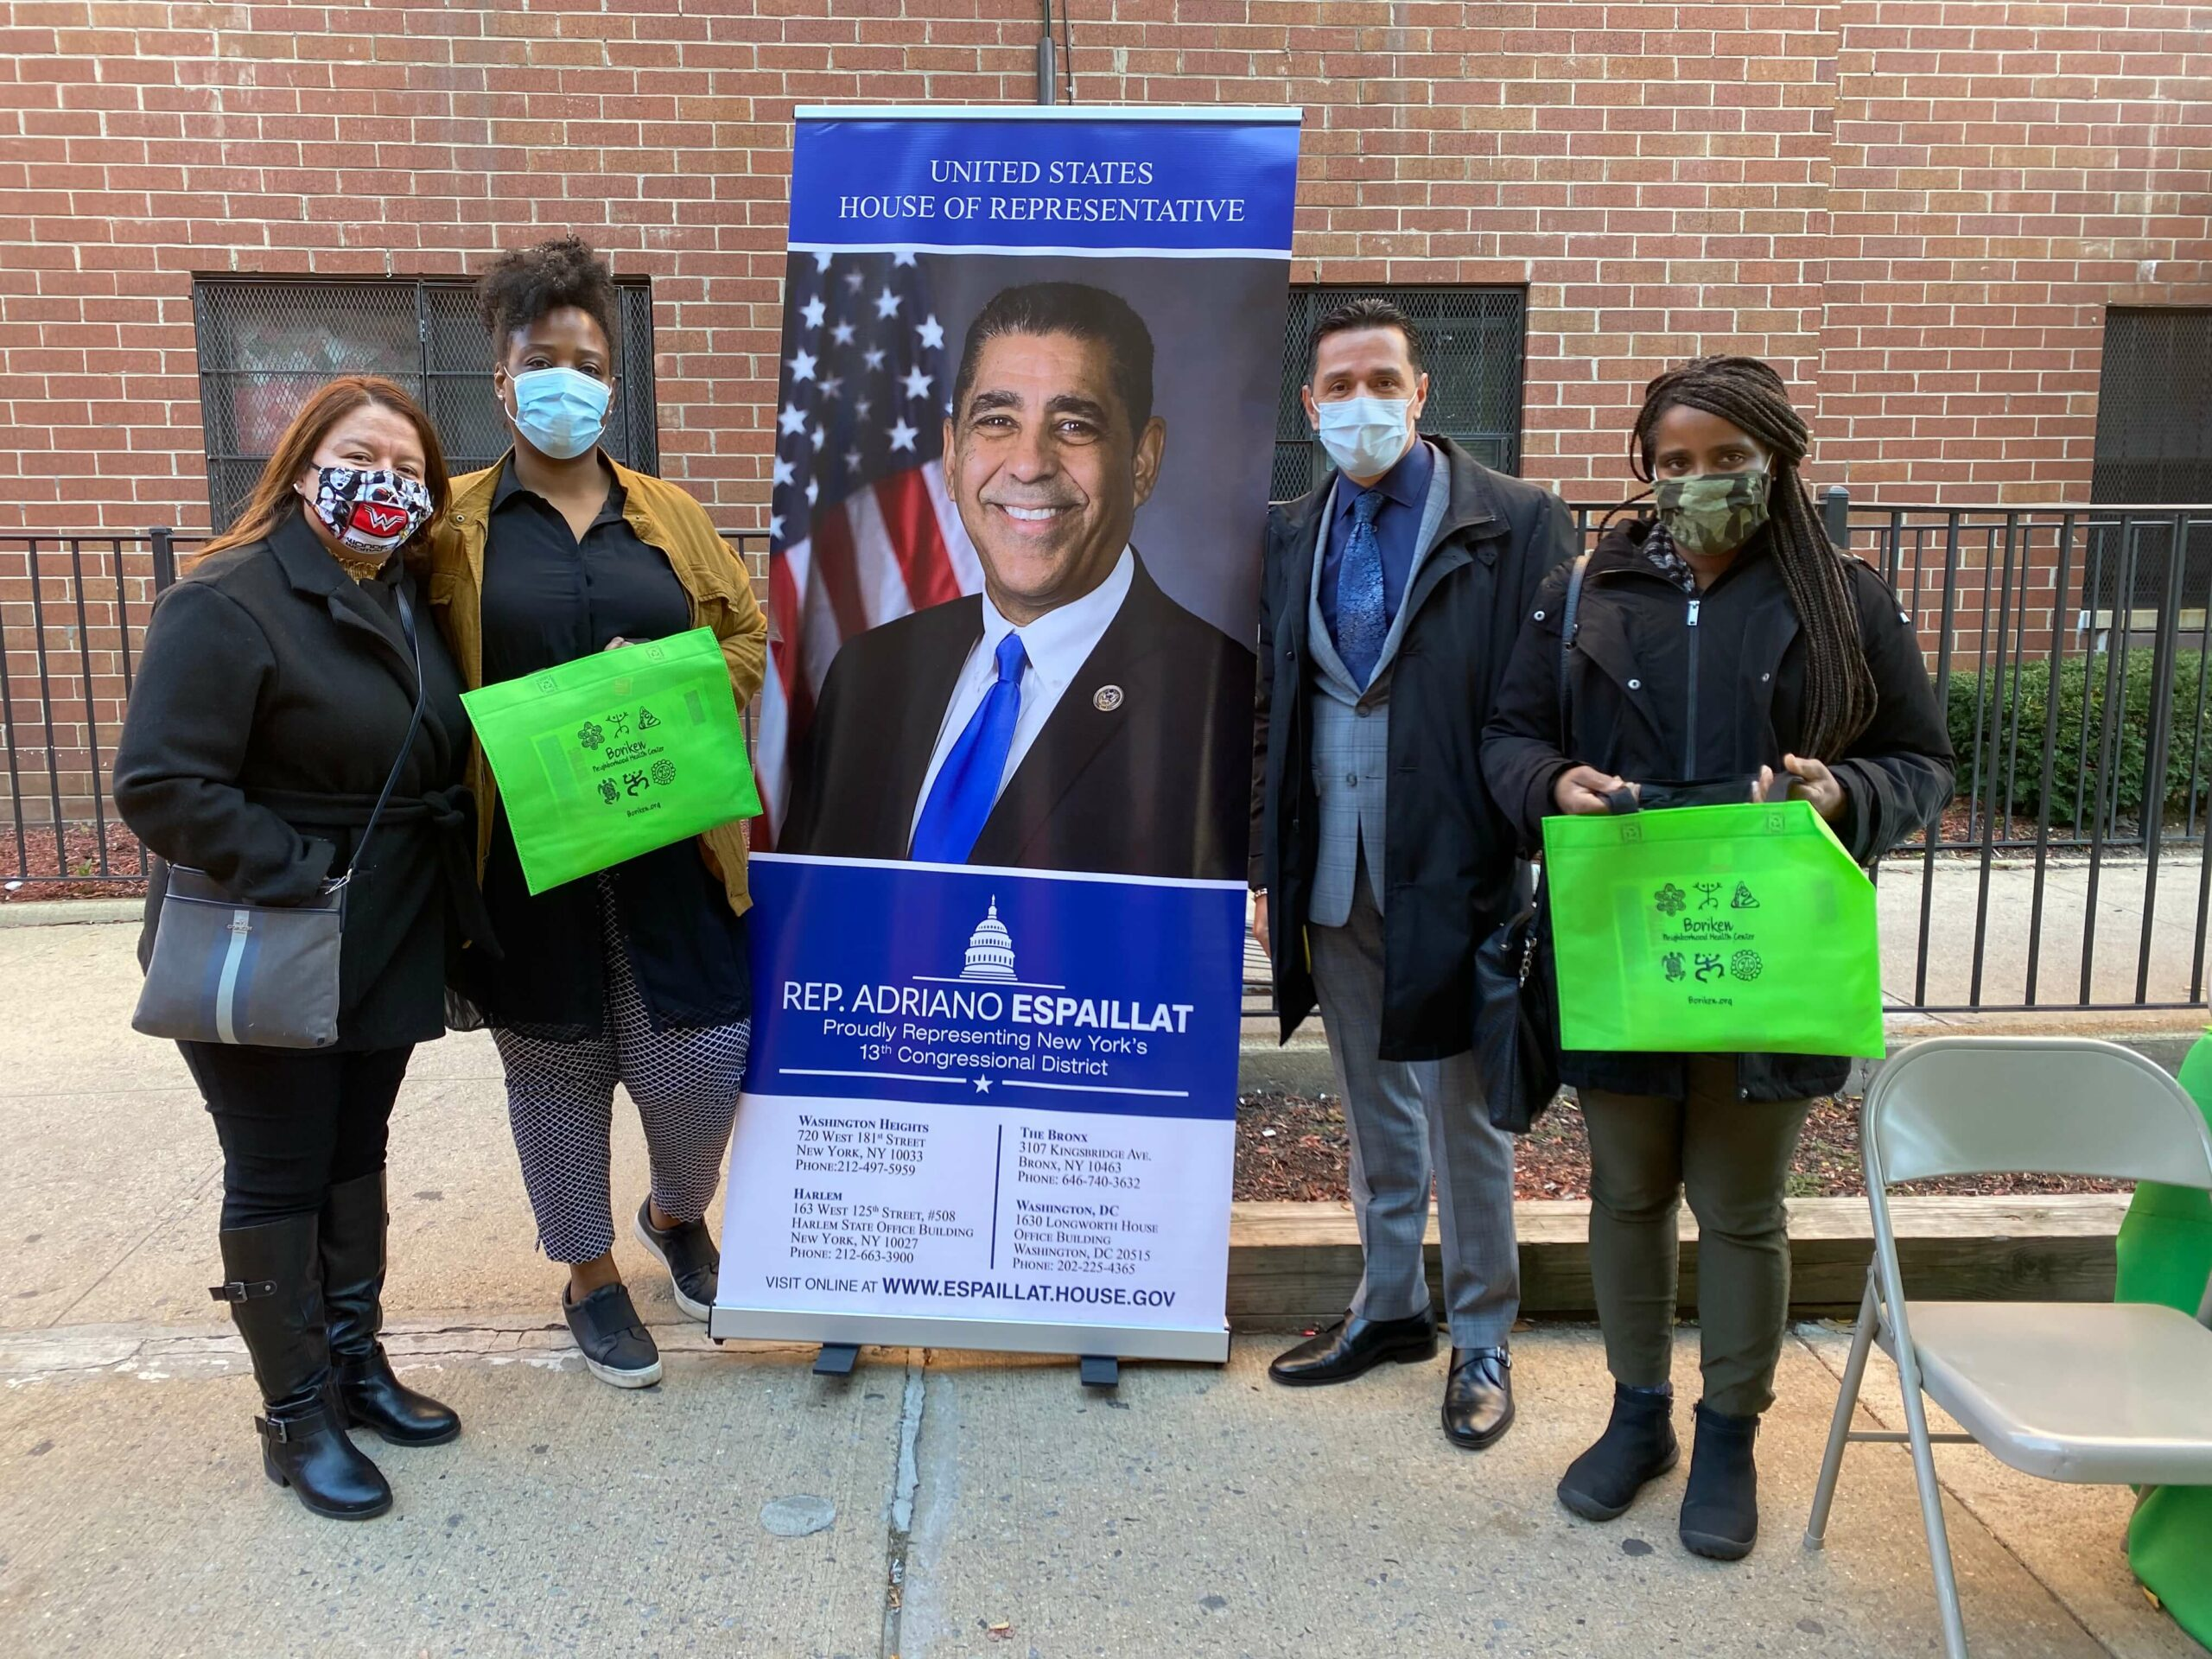 People posing with a photo of congressman Espaillat